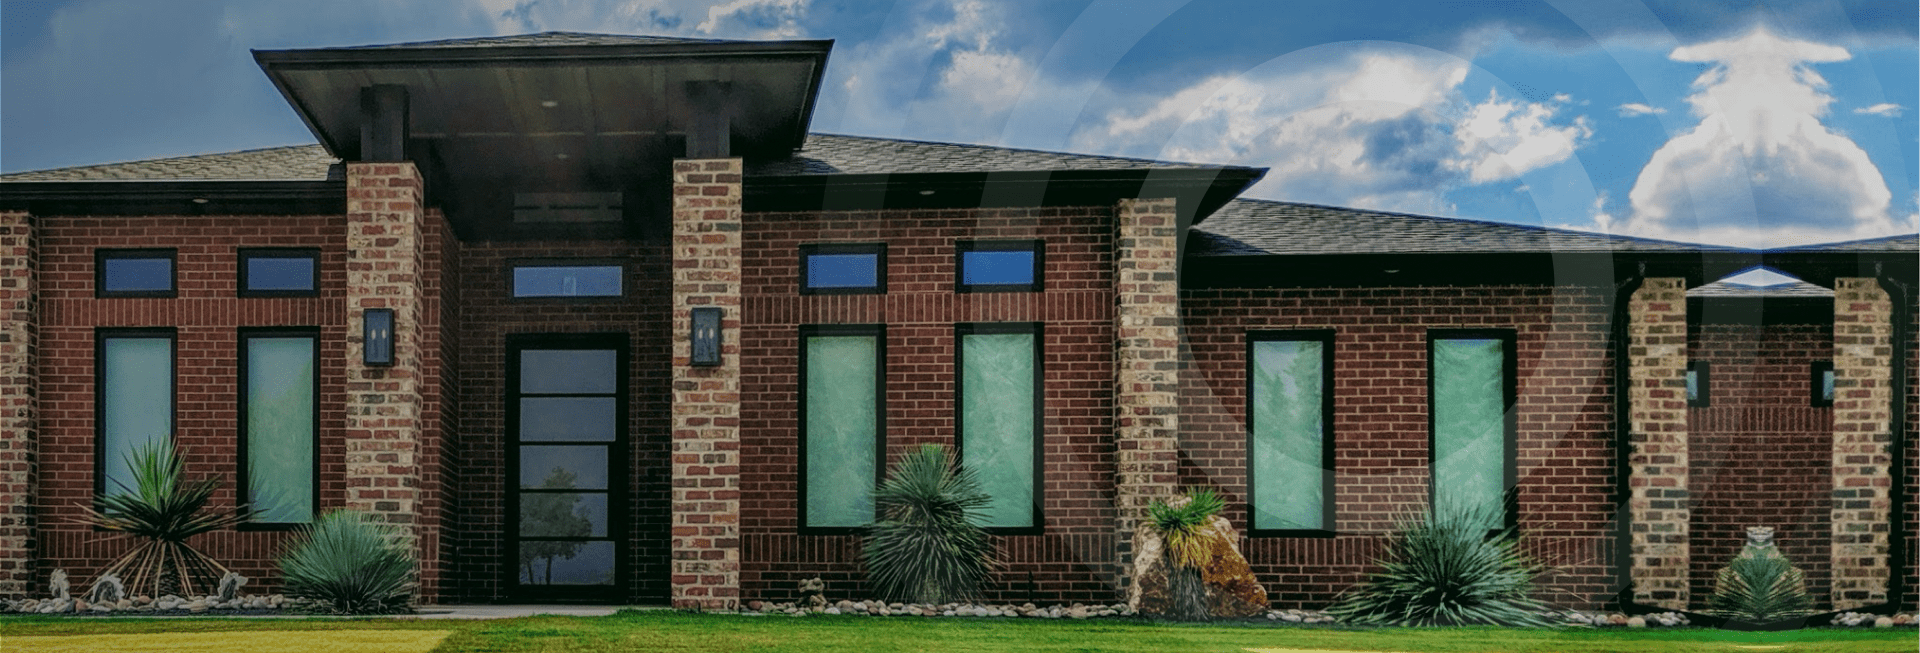 A red brick building with a new gutter system installed